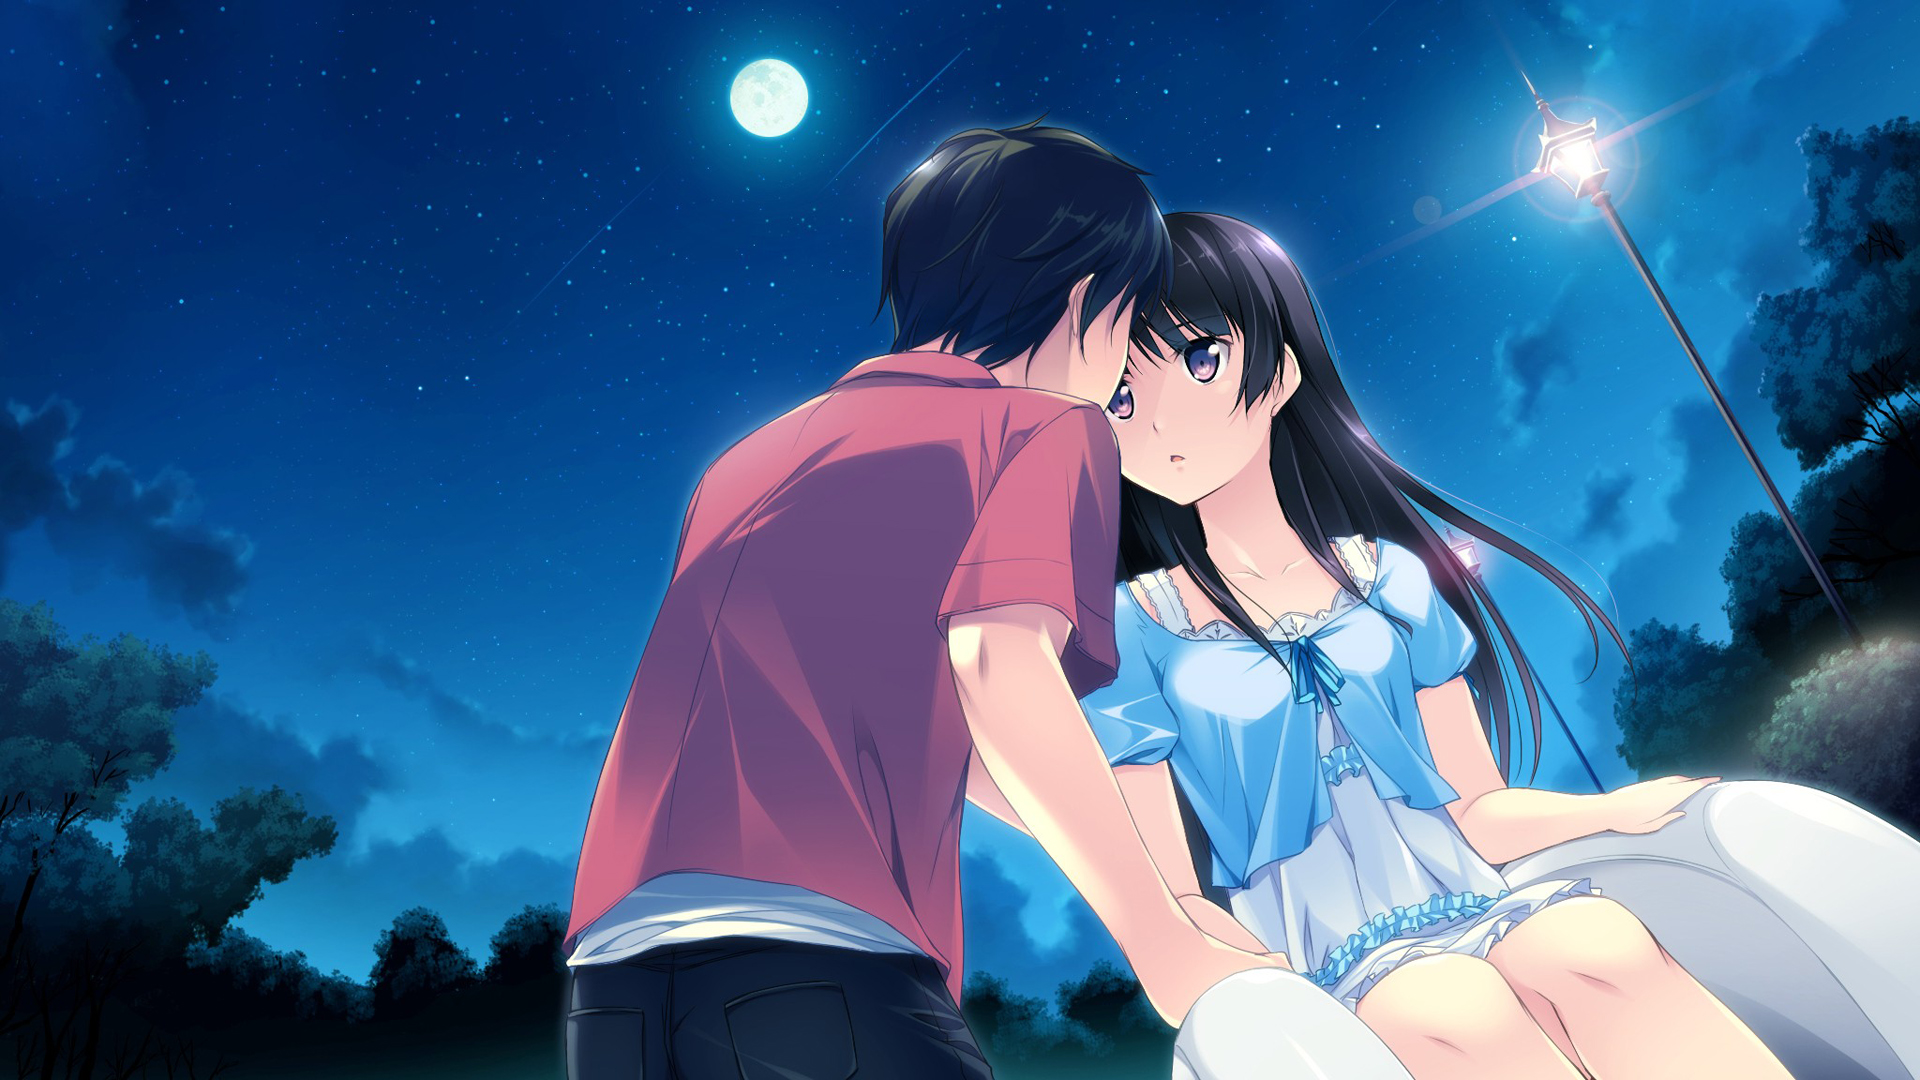 15 romance anime recommendations featuring multiple couples